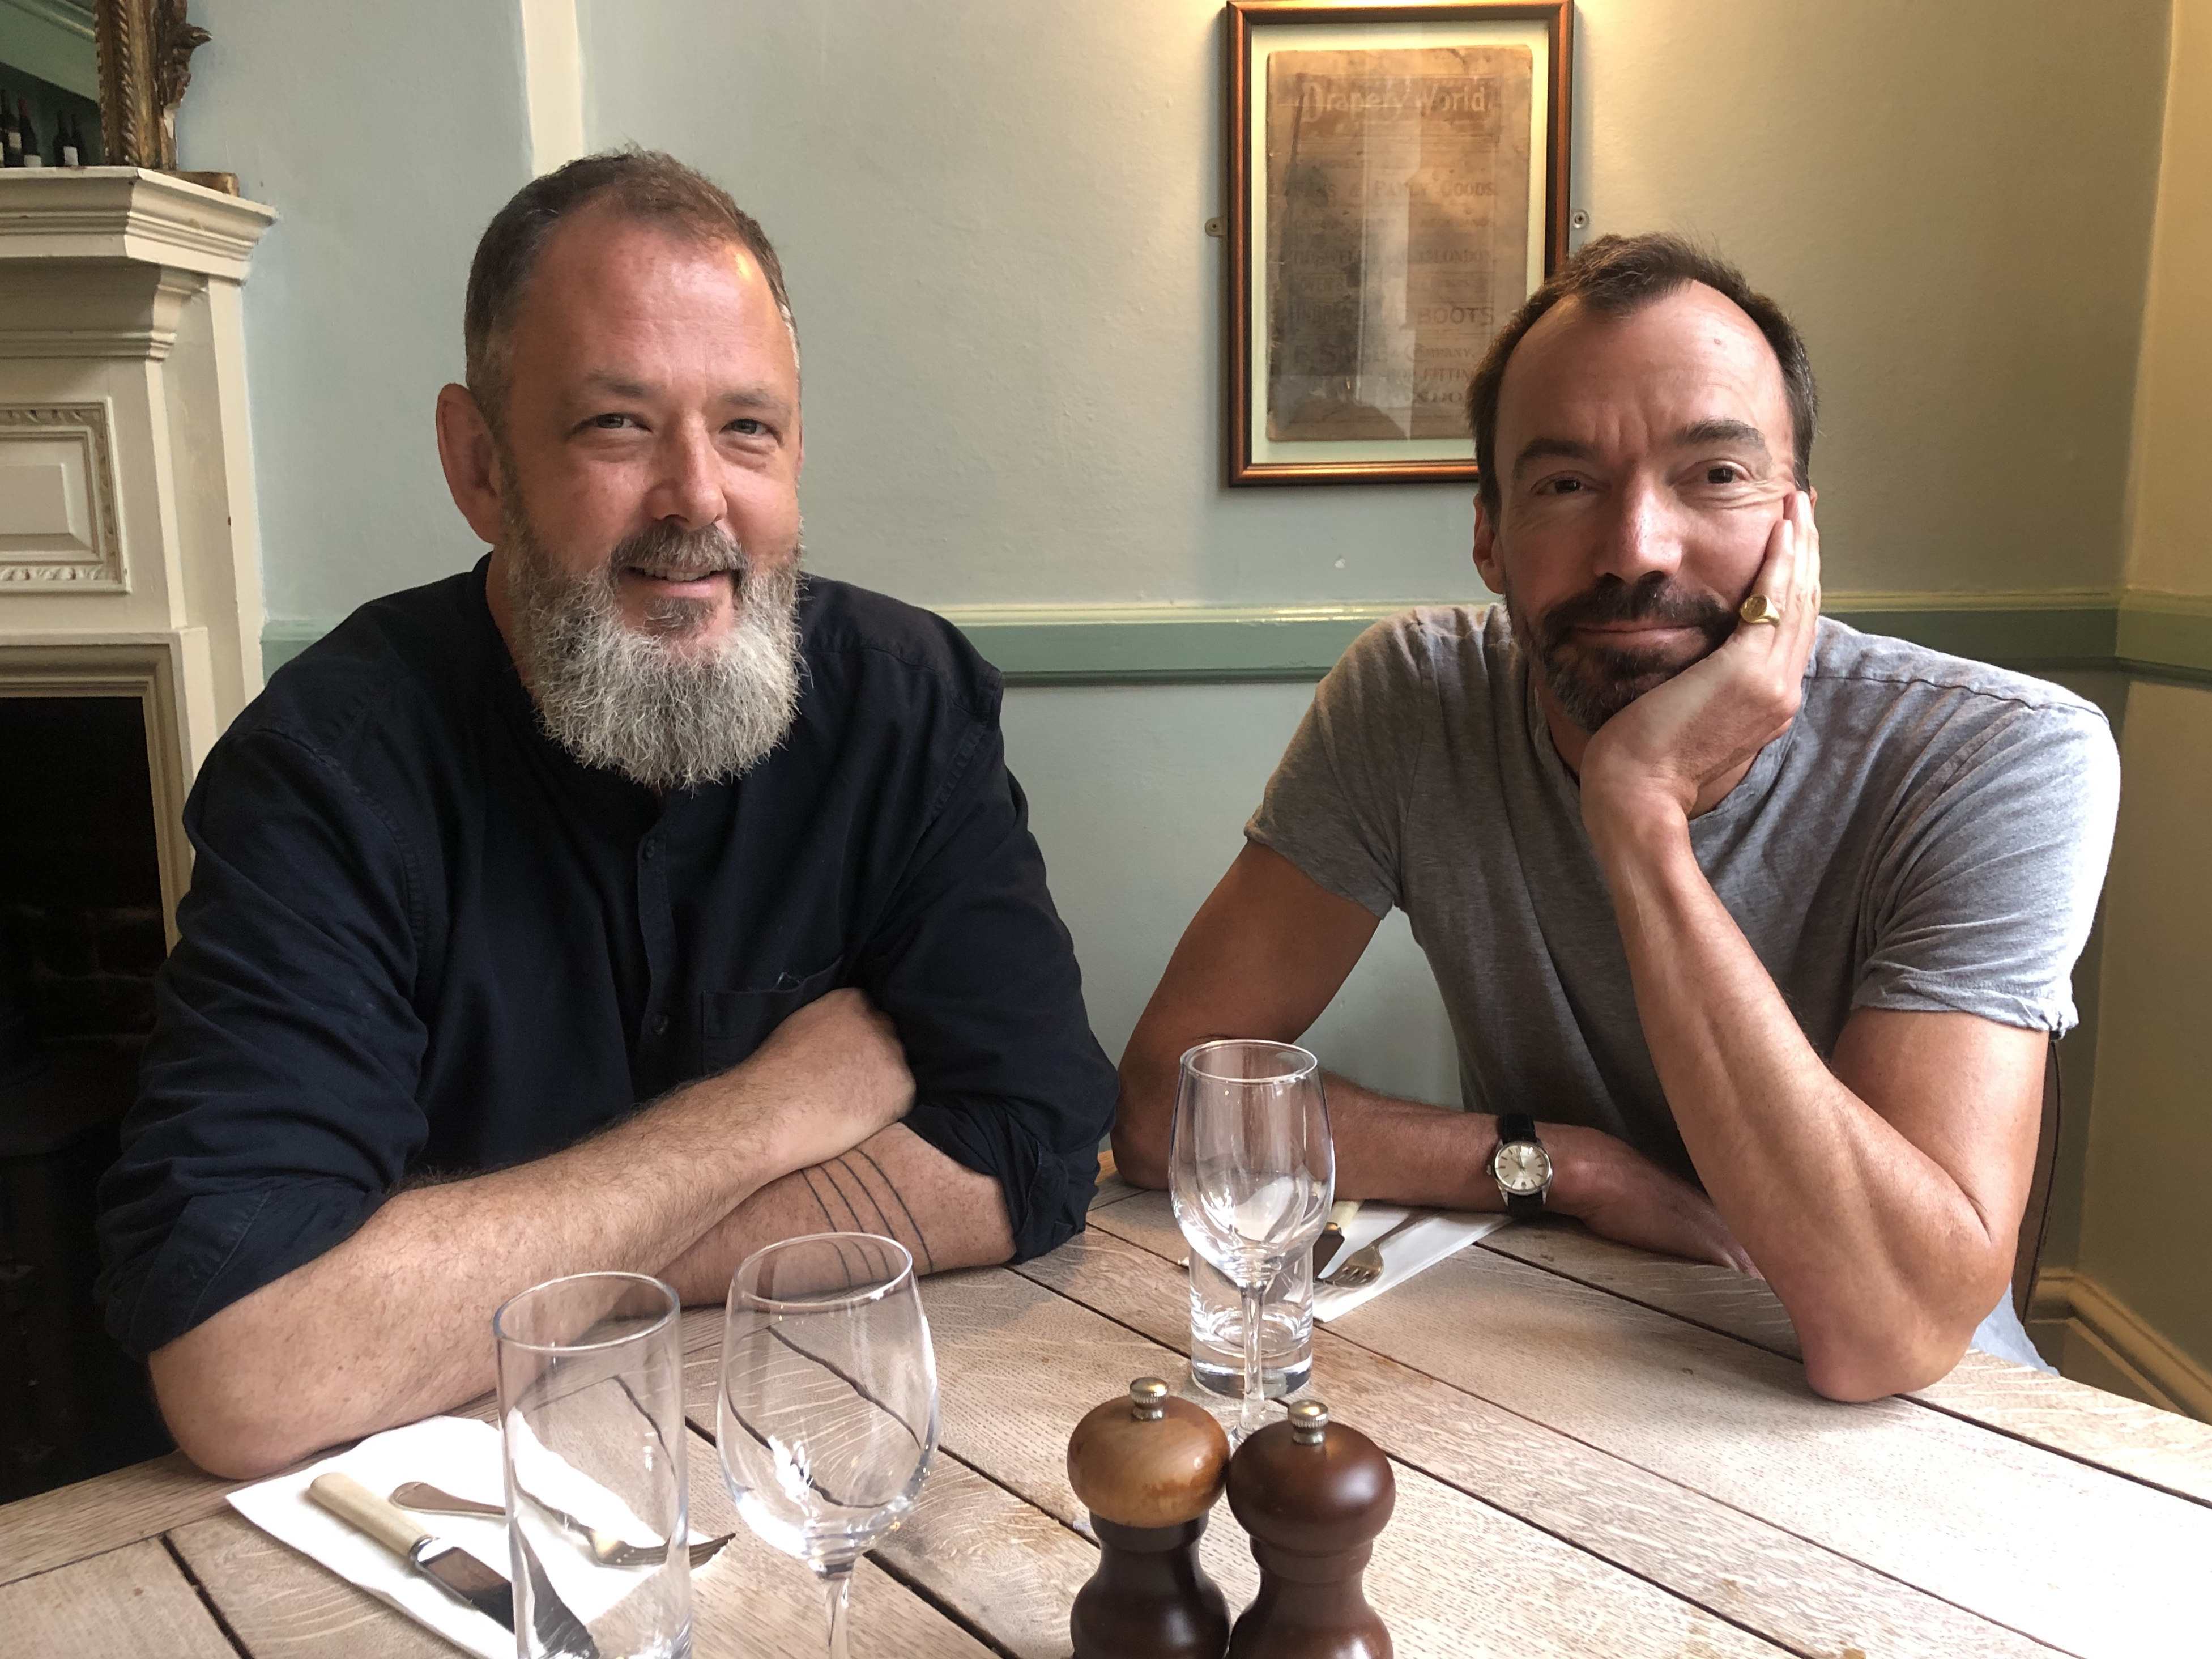 Chef Damian Clisby and publican Nick Gibson, creators of Emile —a new wine bar and bistro in Shoreditch, east London